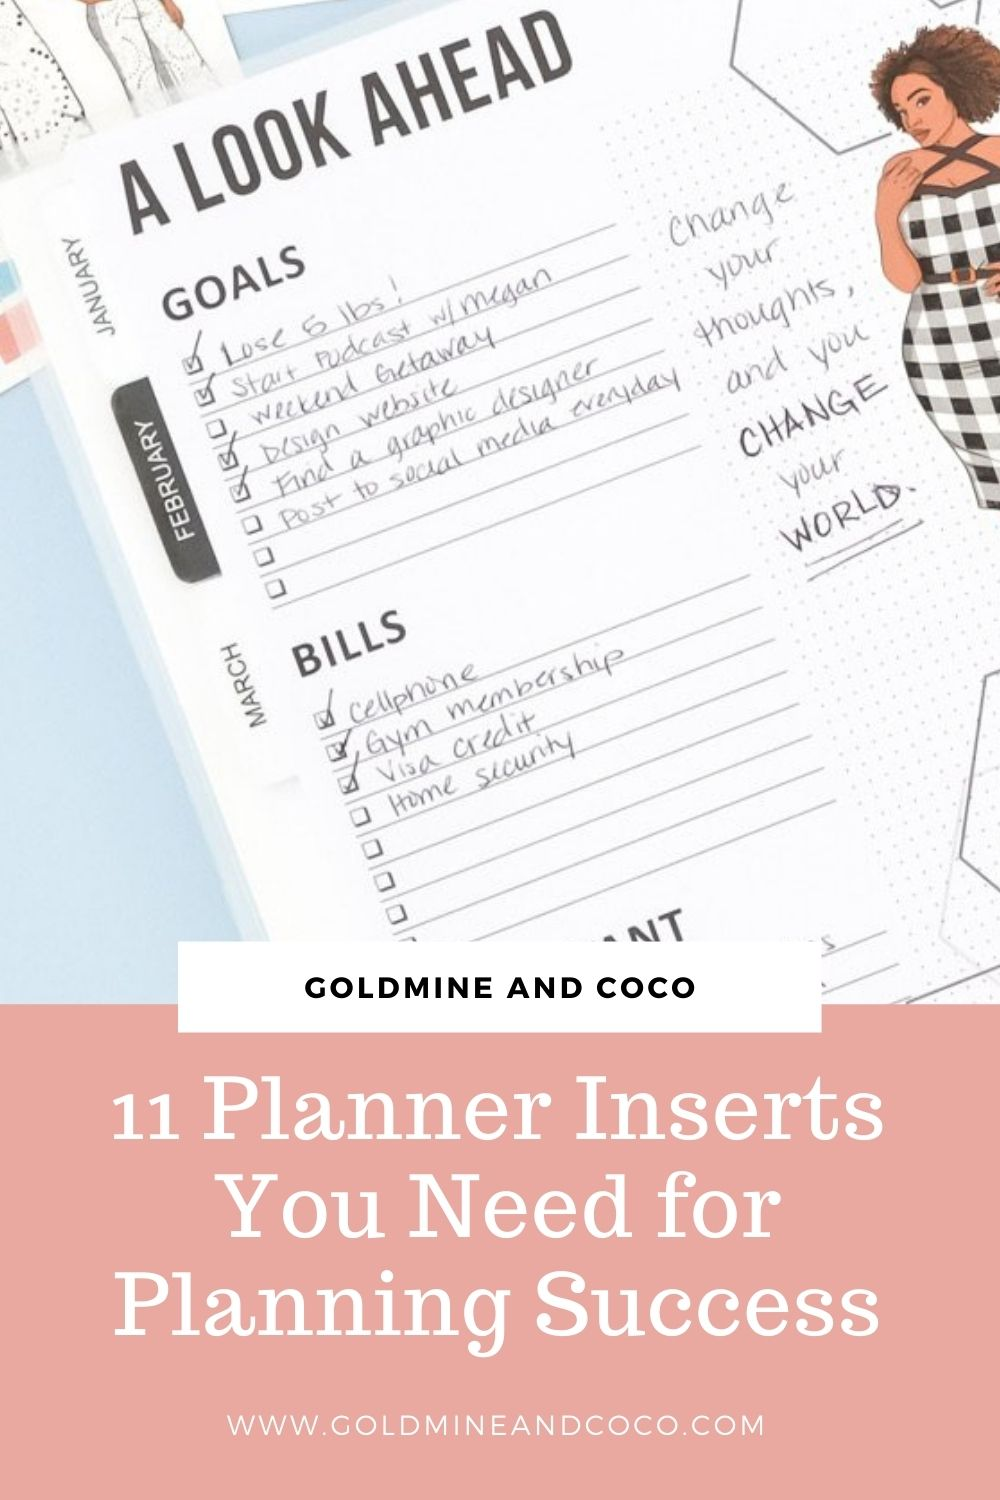 11 Planner Inserts You Need For Planning Success in 2021